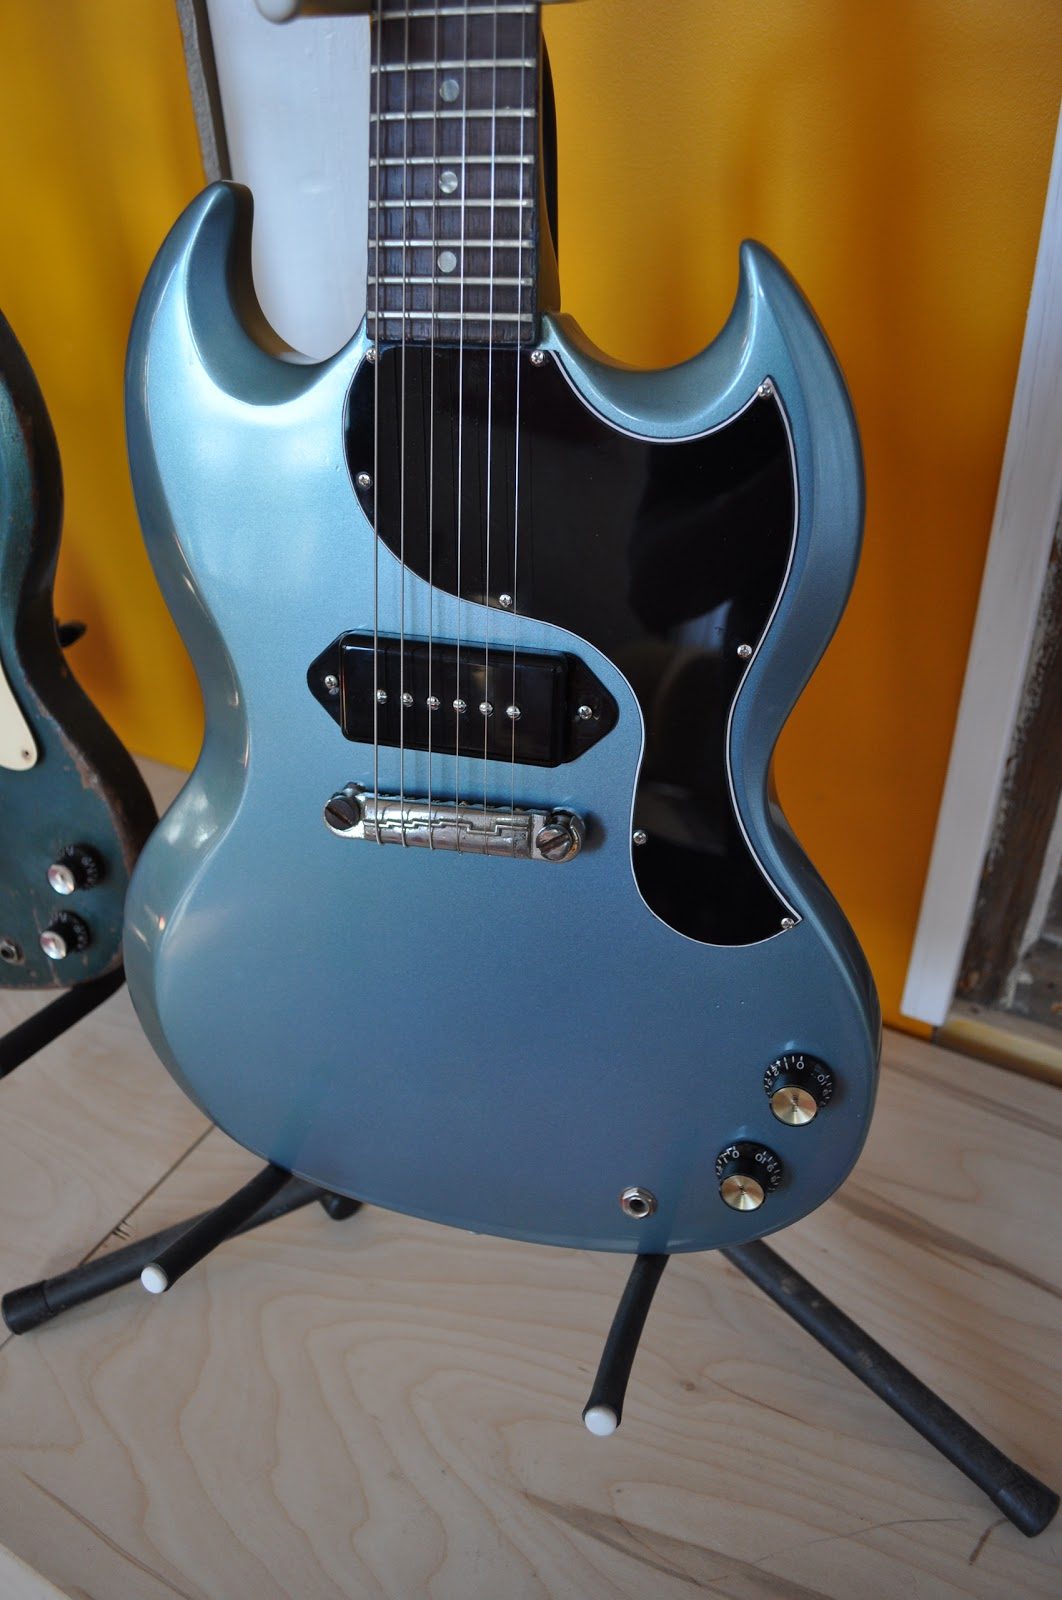 hight resolution of  repro knobs and pots and currently has a gfs p 90 pickup though i may switch in a 64 gibson p 90 once i find a cover that fits it correctly